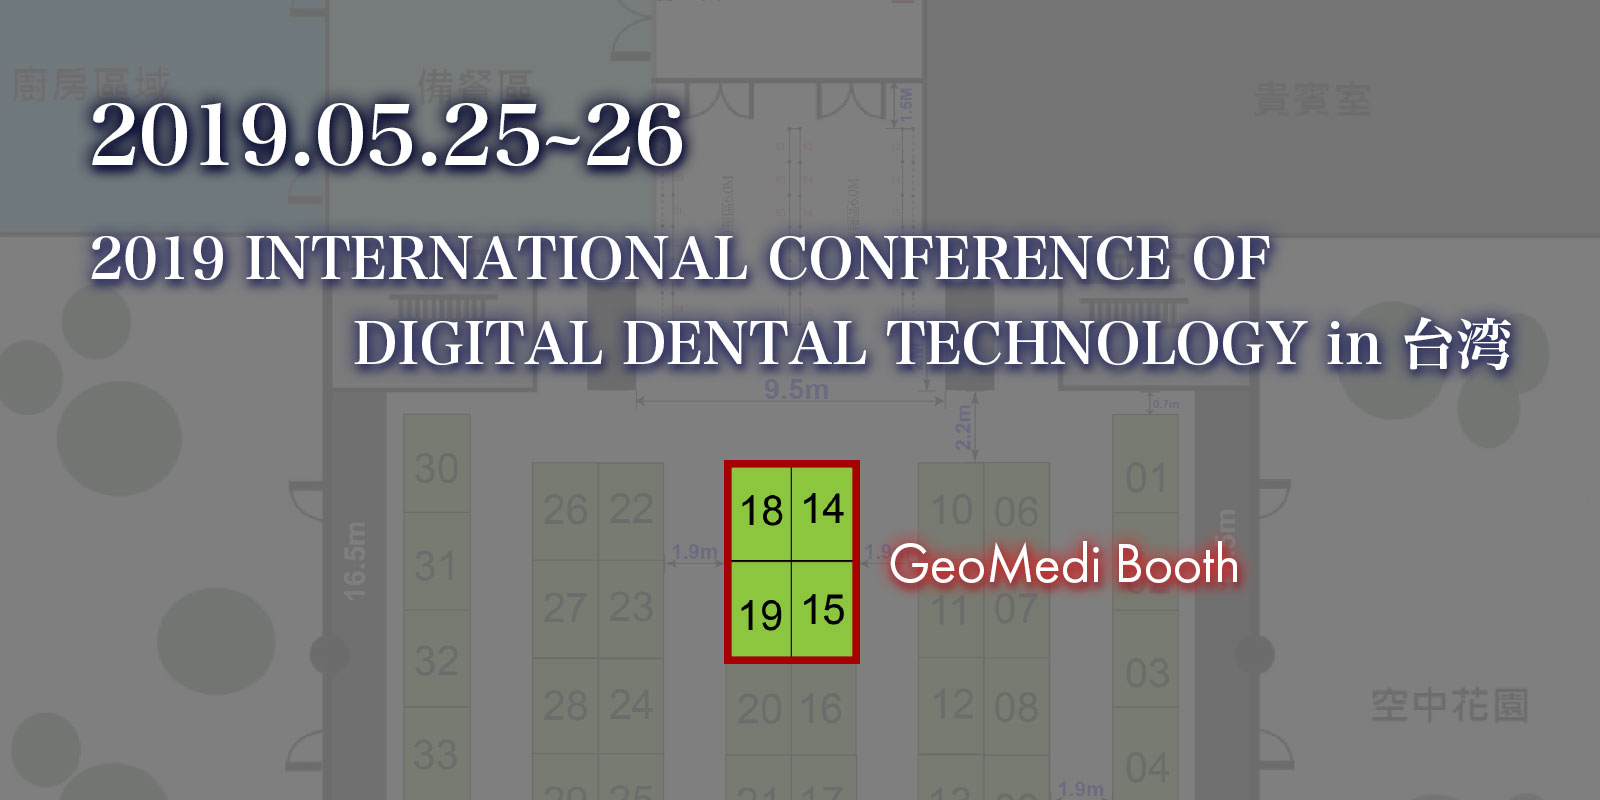 2019 INTERNATIONAL CONFERENCE OF DIGITAL DENTAL TECHNOLOGY in 台湾